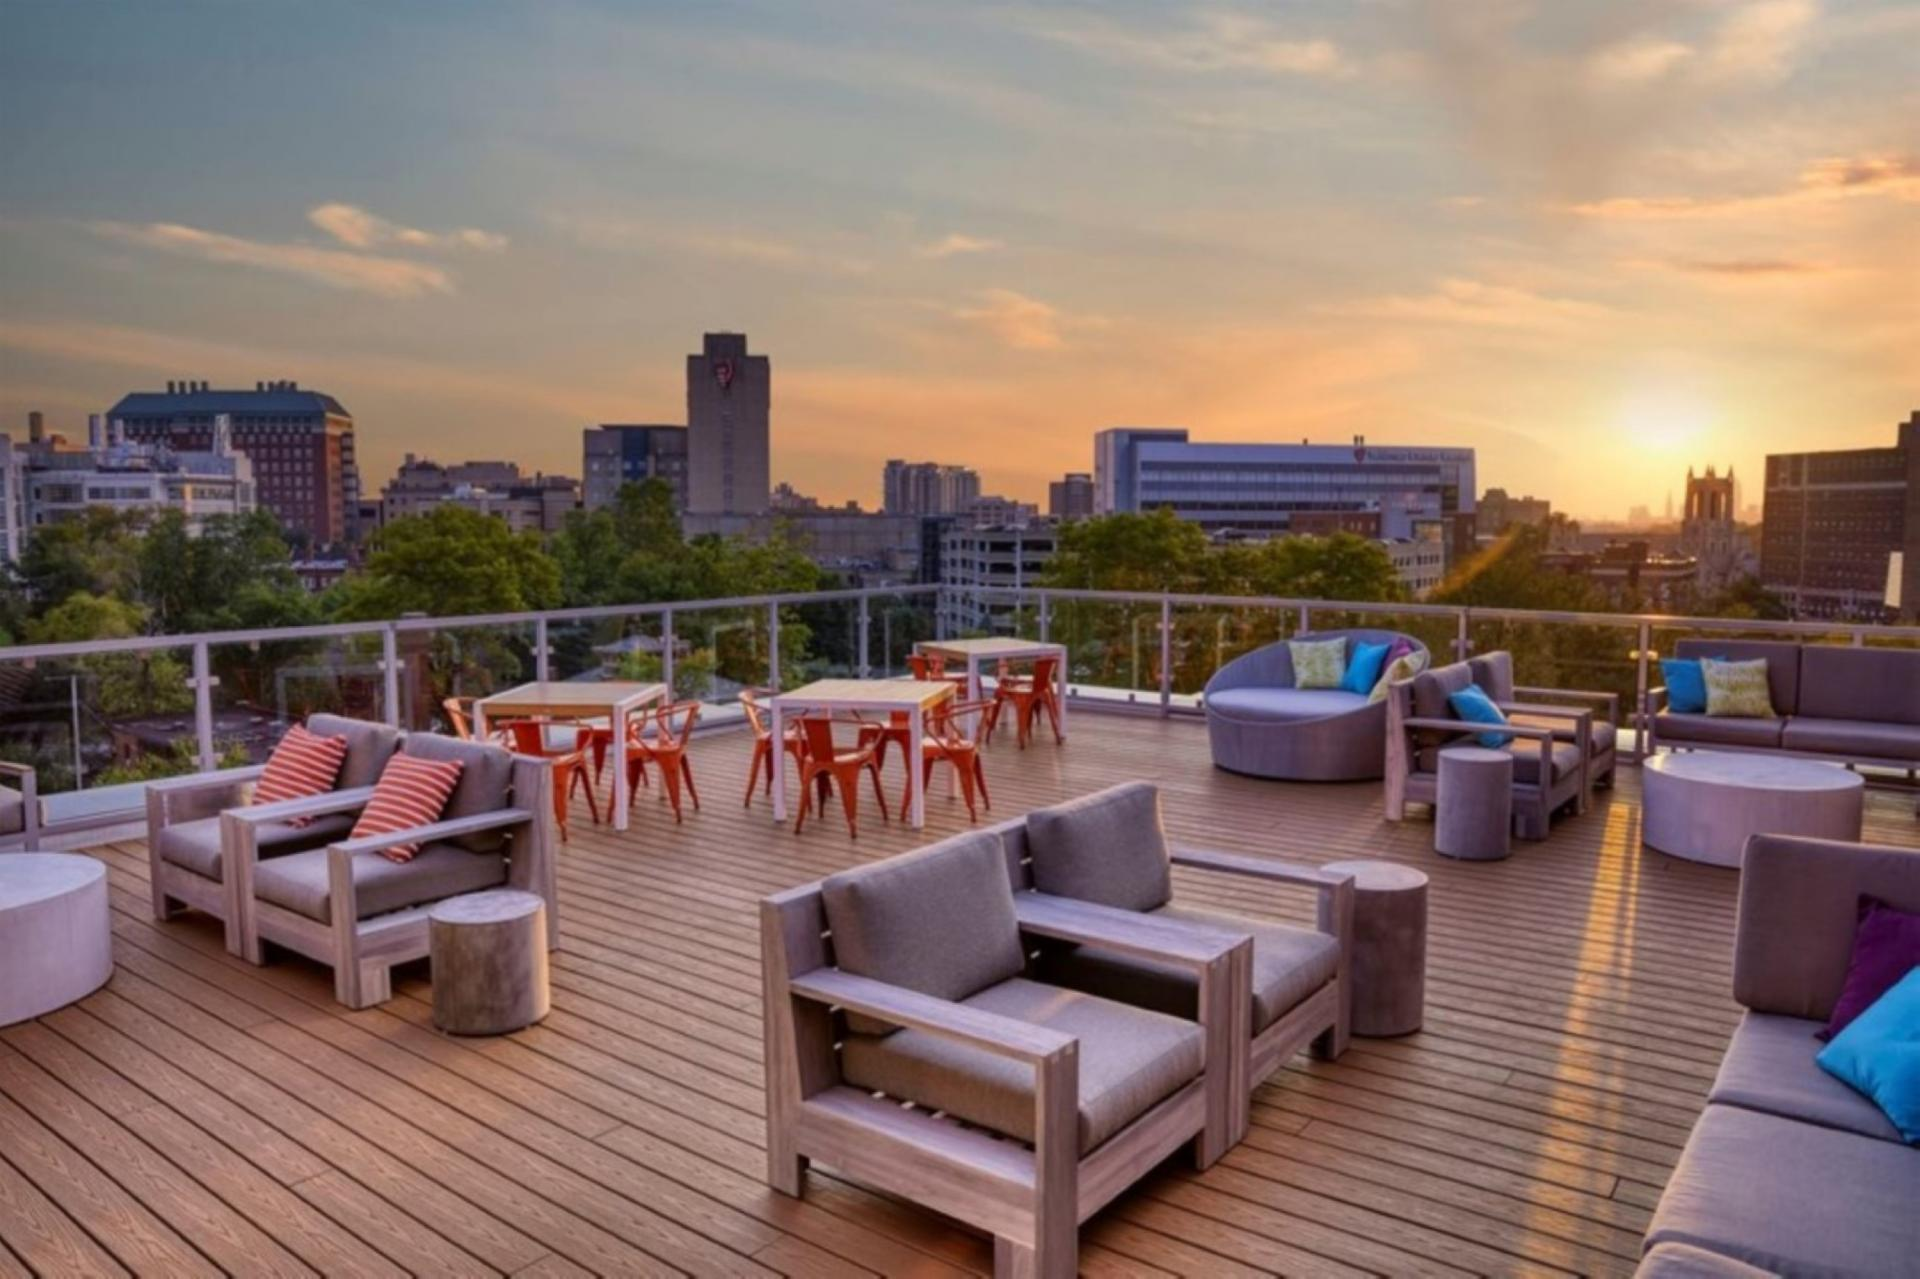 Roof deck at Centric Apartments, University Circle, Cleveland